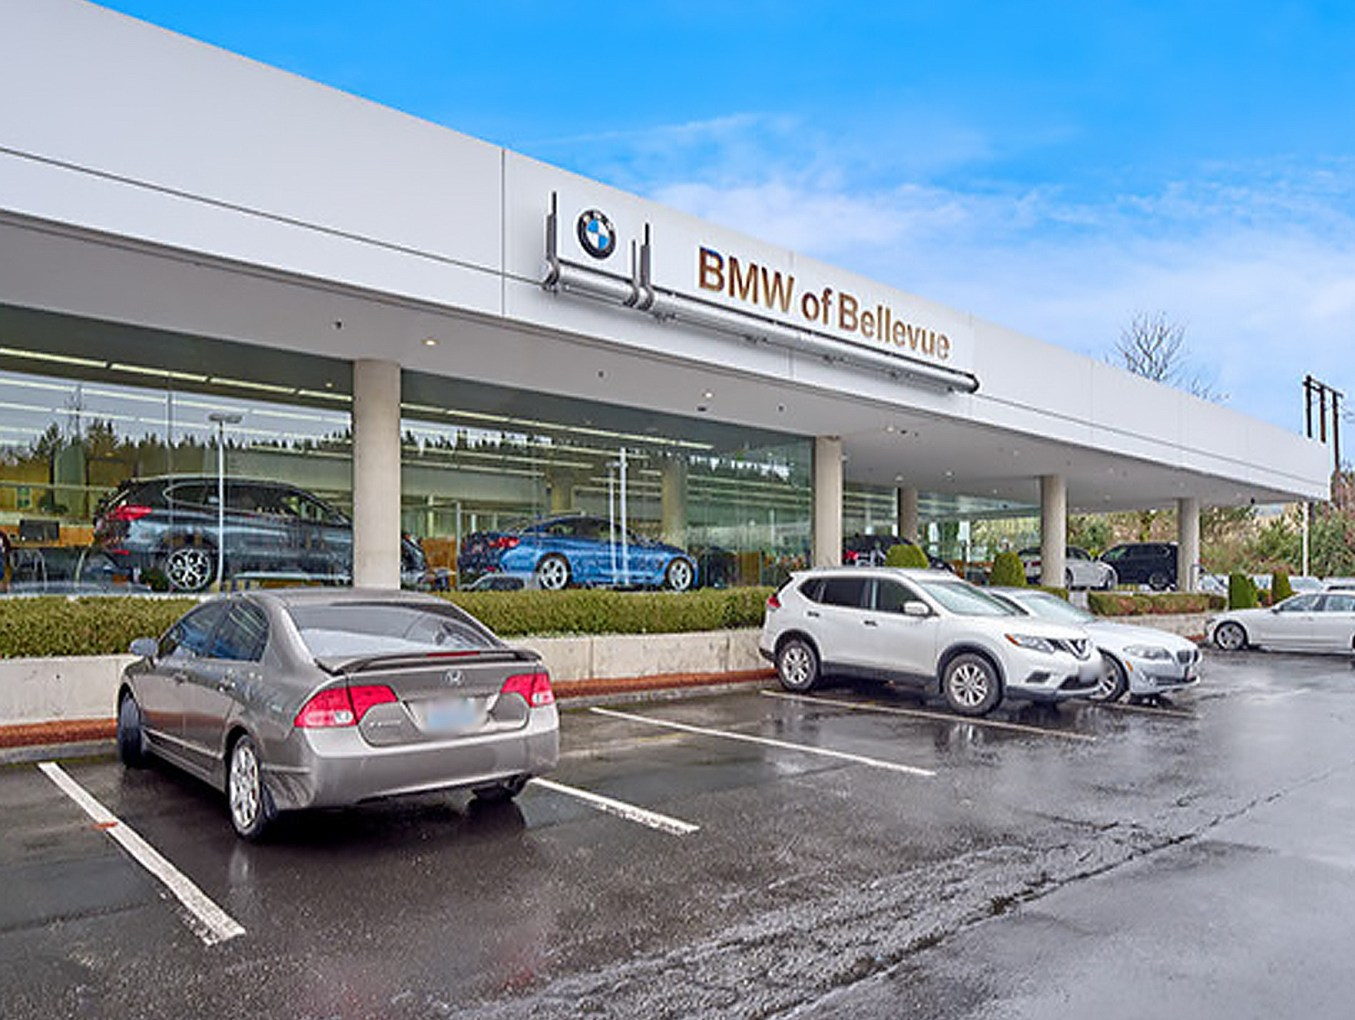 Sale Announcement: BMW of Bellevue Property